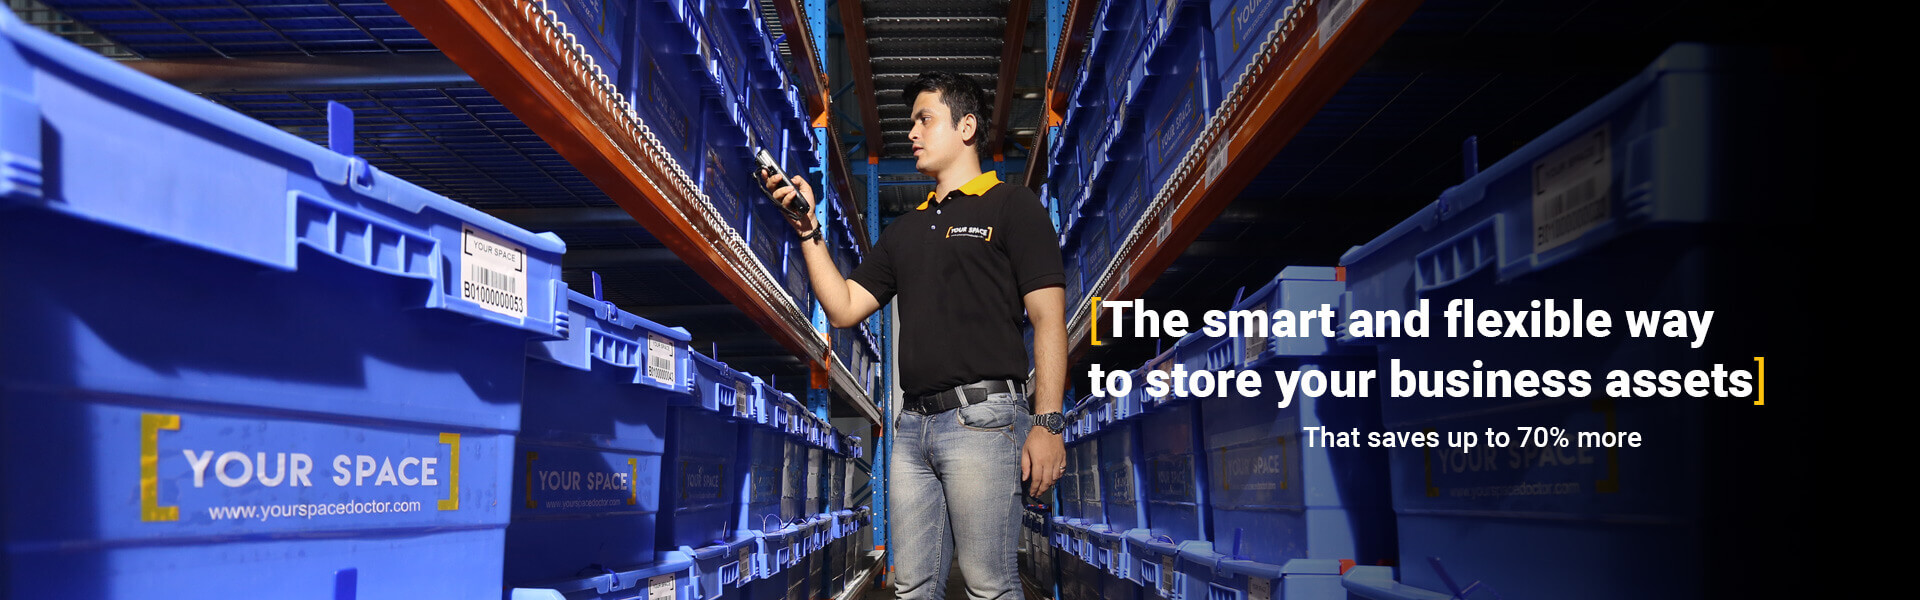 business storage solutions provider